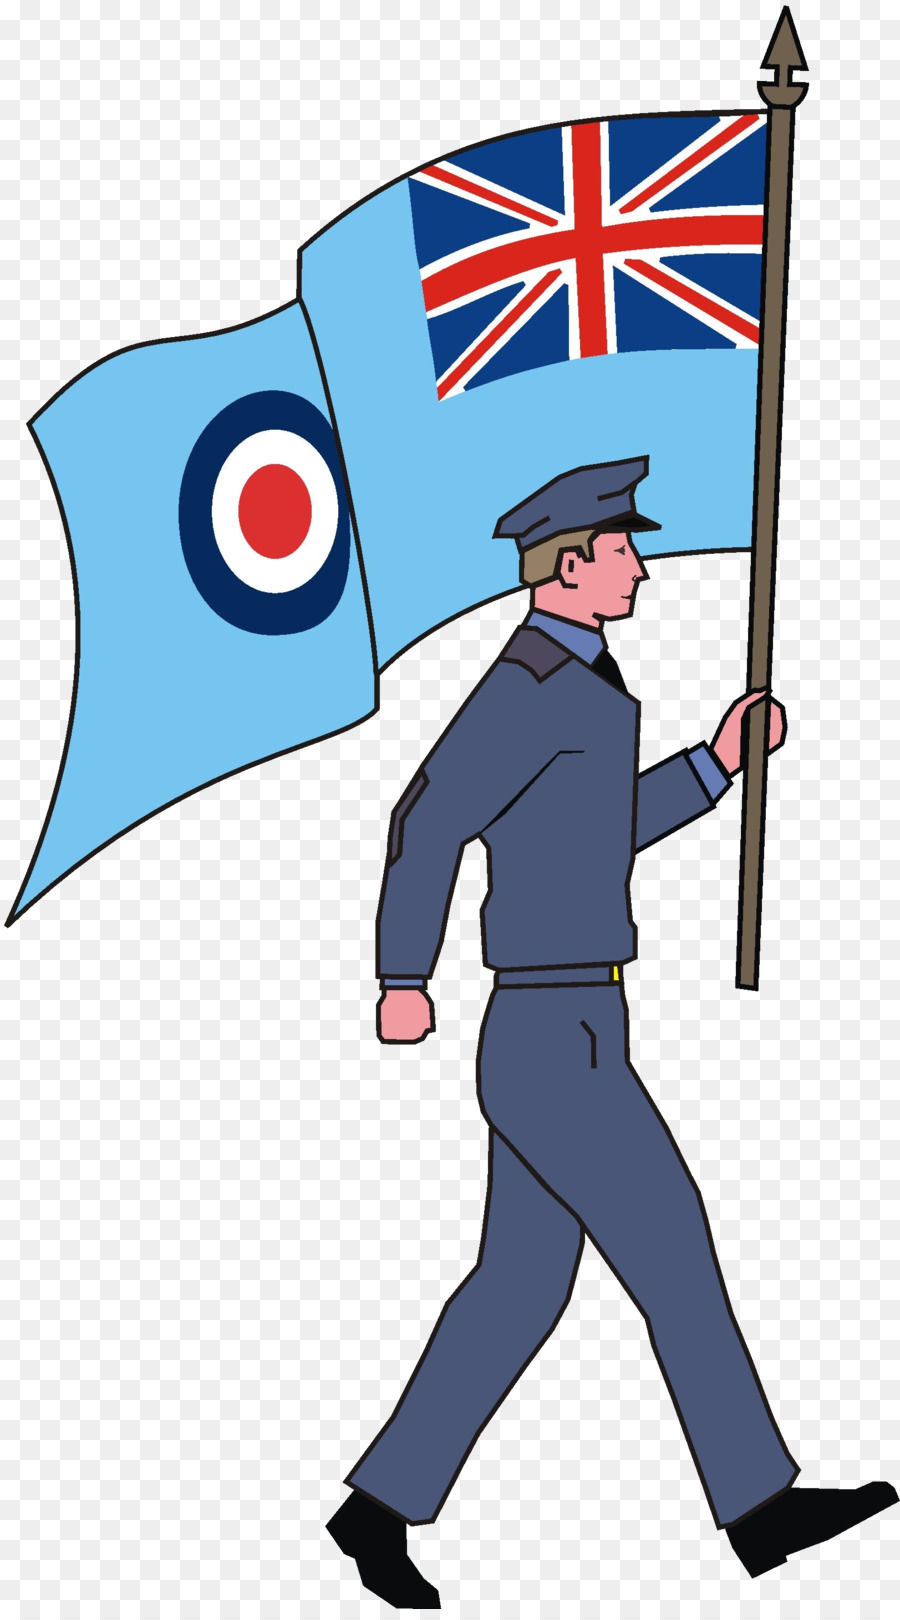 royal air force clipart Royal Air Force Clip art clipart.